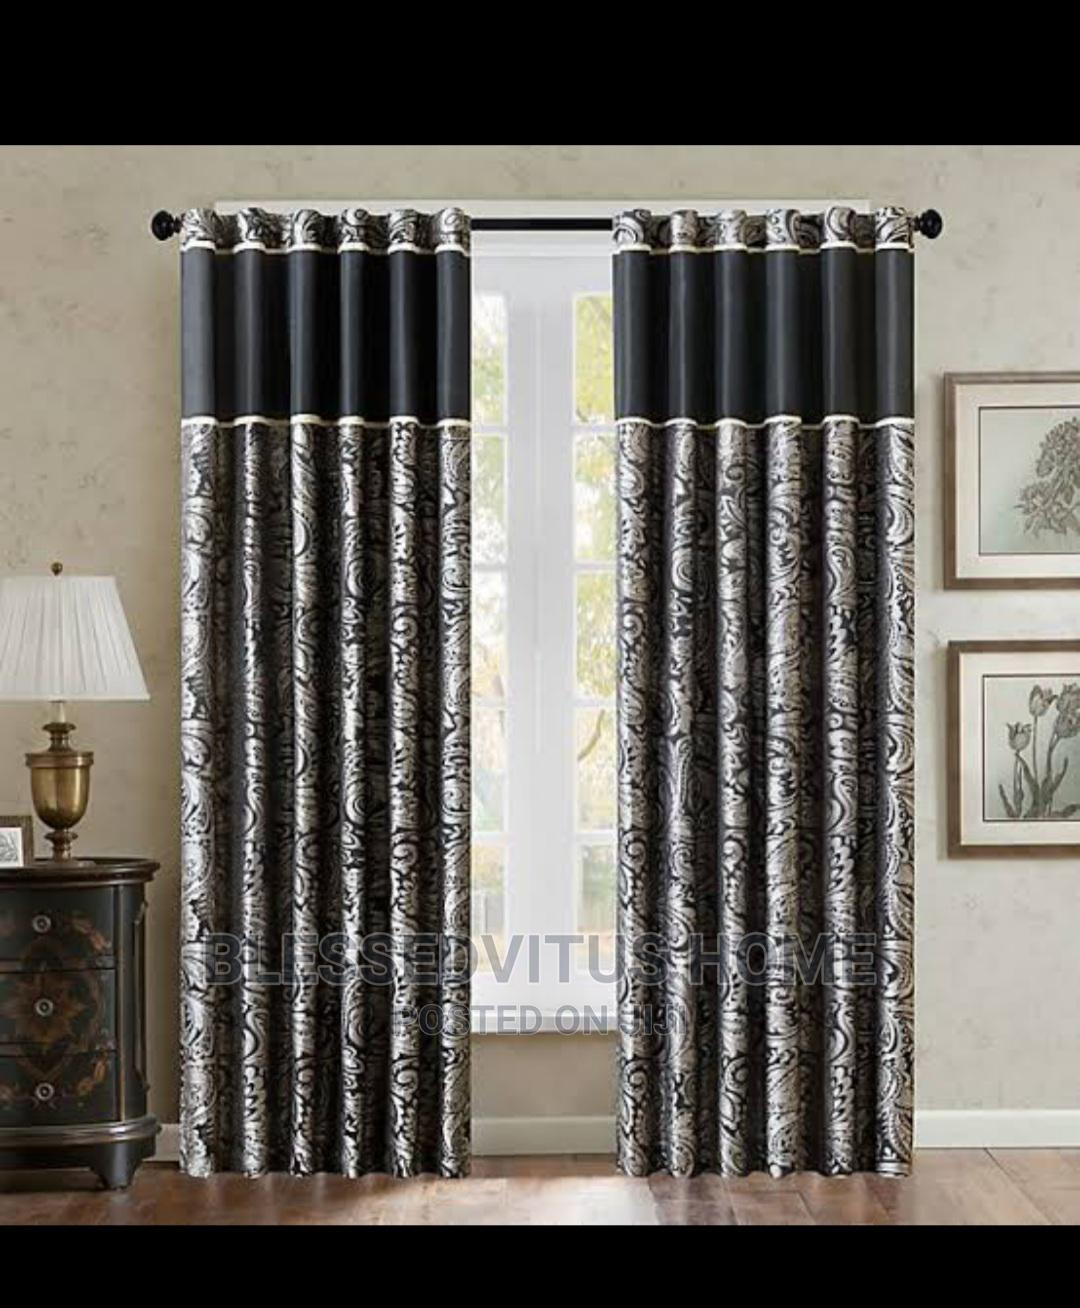 Blackout Curtain With Nice Design